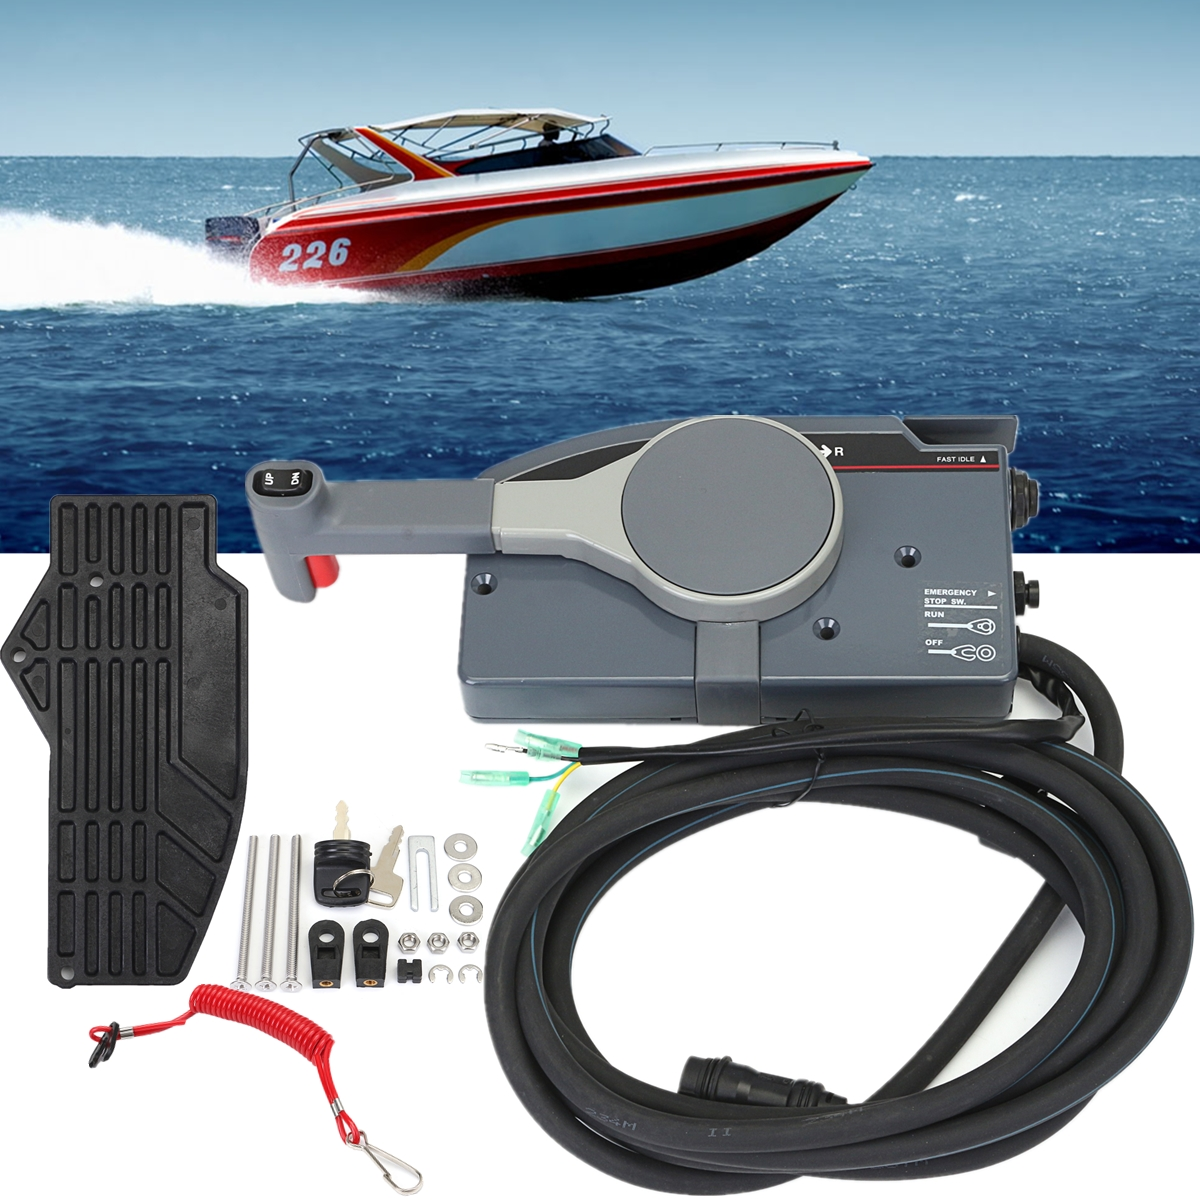 medium resolution of control box includes a key switch stop lanyard and 16 10 pin harness and cable box is push to open match the original yamaha outboard engine